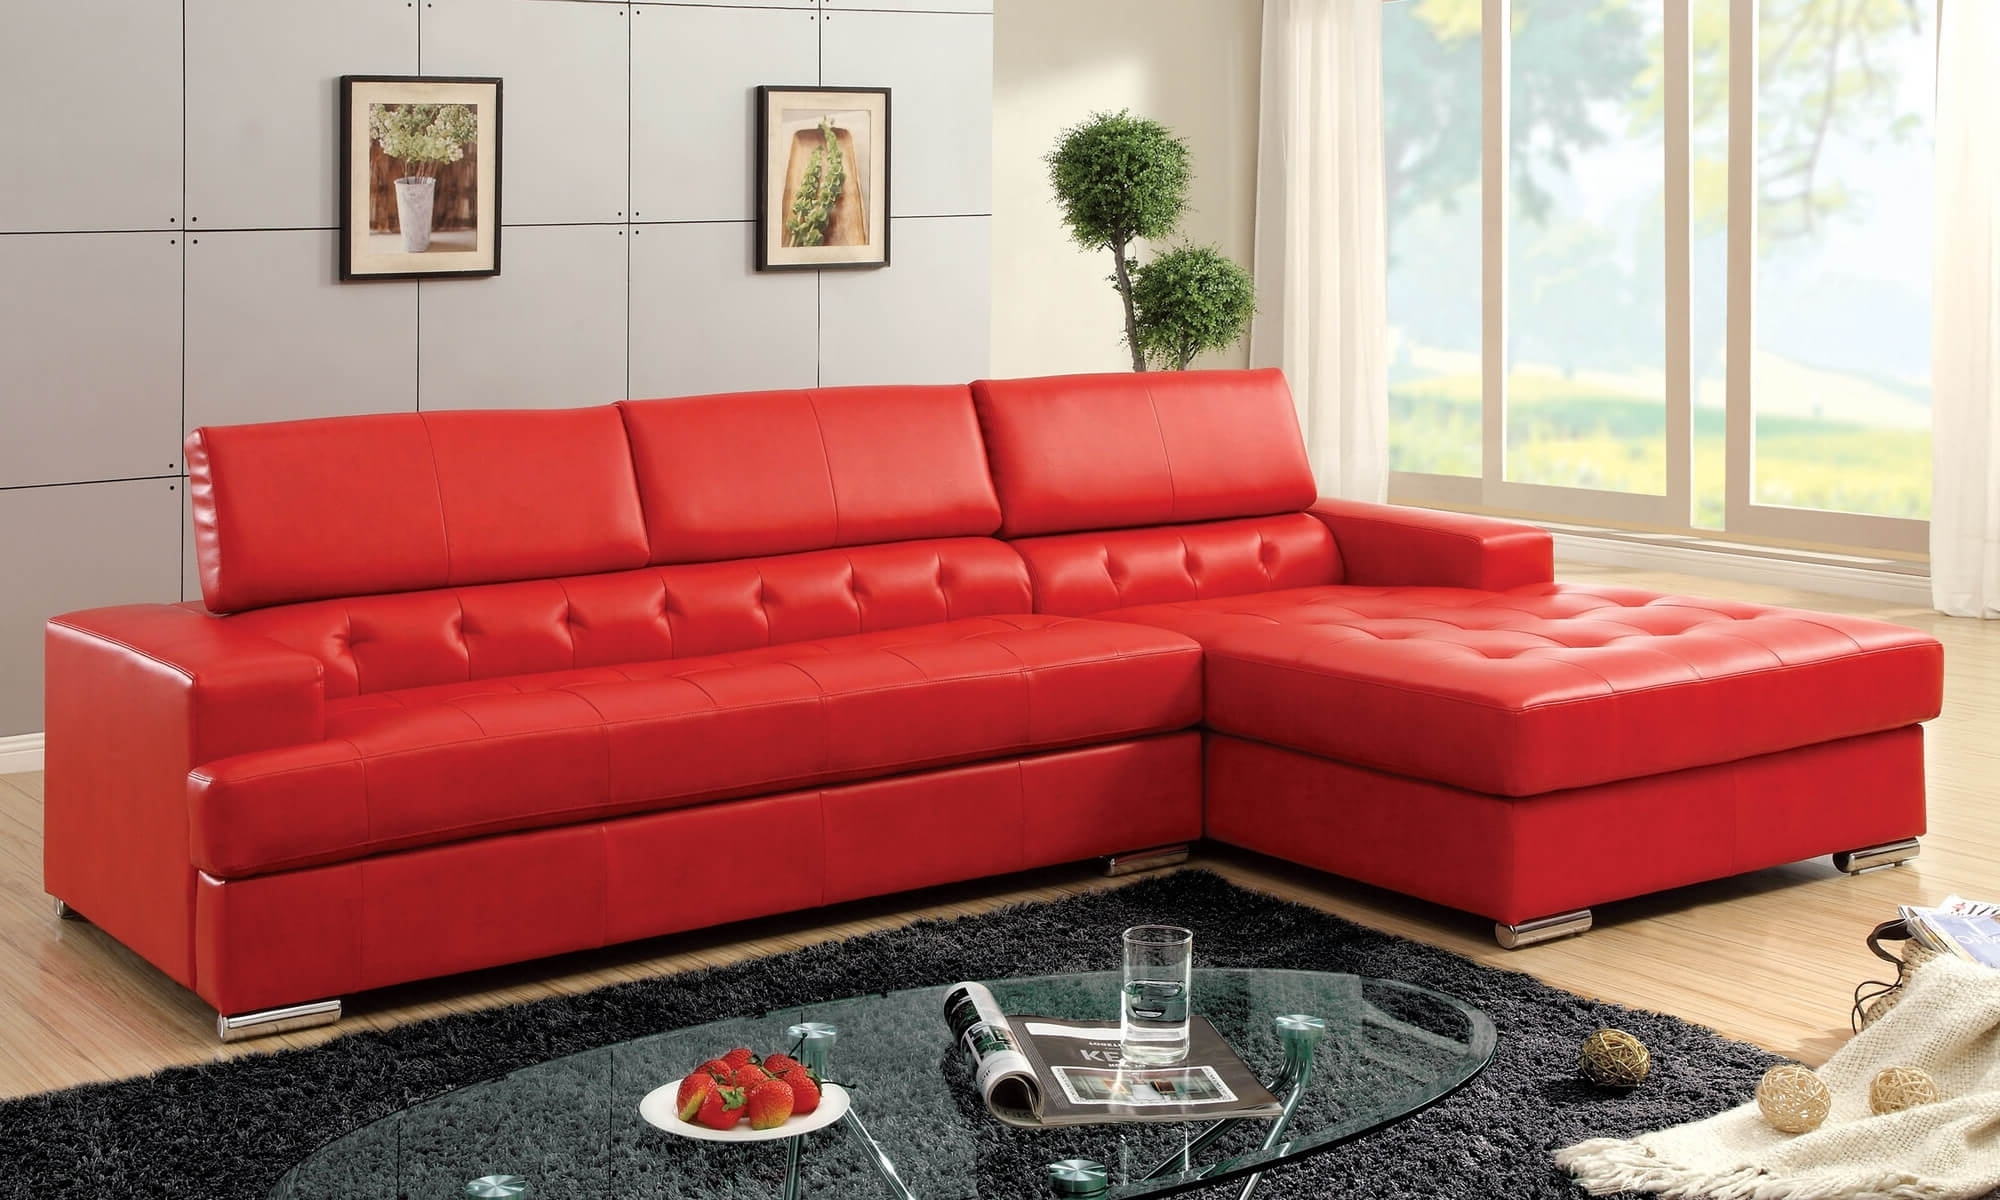 Crate And Barrel Leather Sectional Sofa • Leather Sofa Within Most Popular Red Faux Leather Sectionals (View 5 of 20)